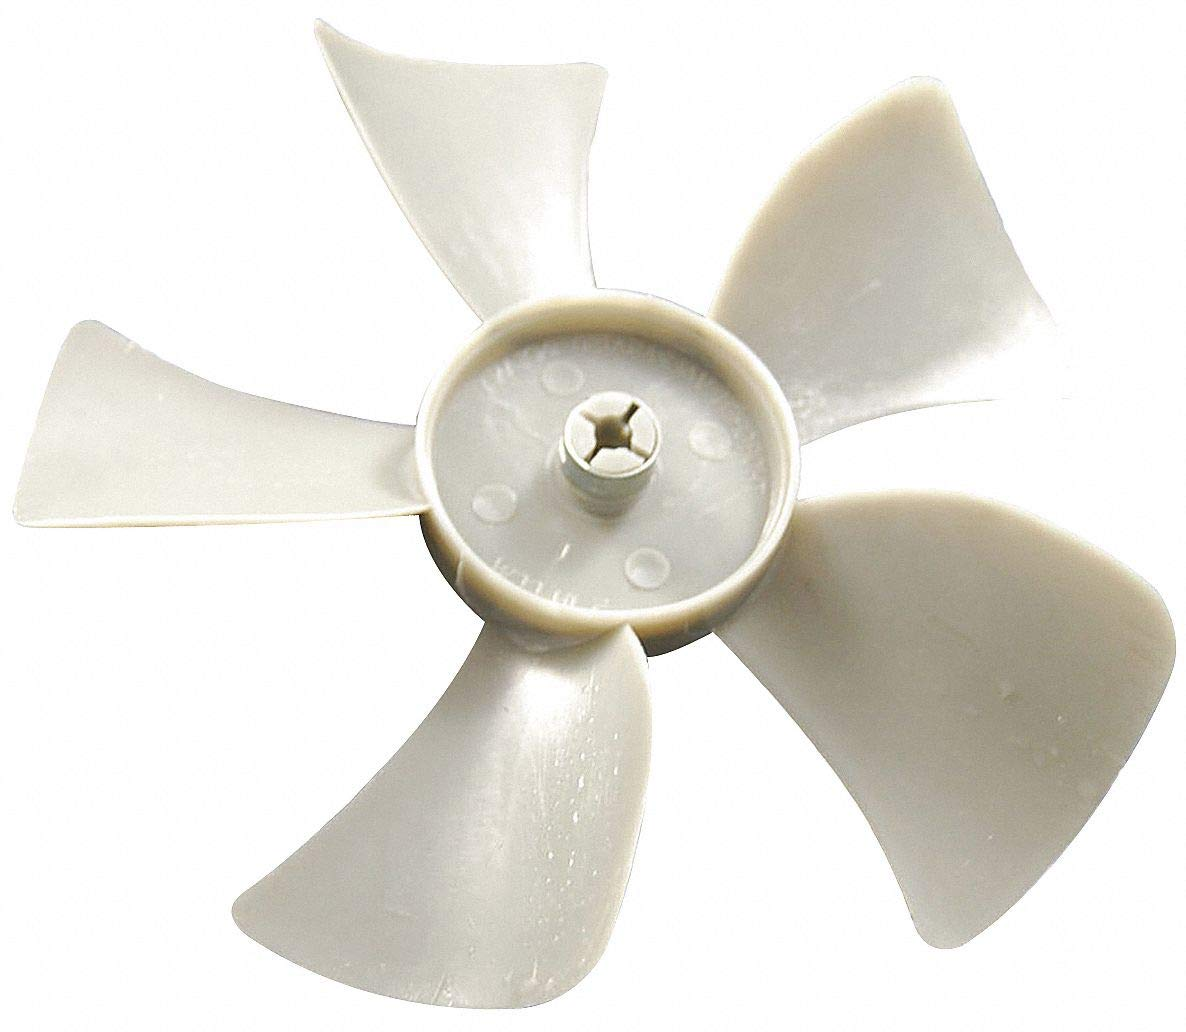 5'' CW Facing Discharge Propeller, White; Number of Blades: 5 by CAI - DAYTON